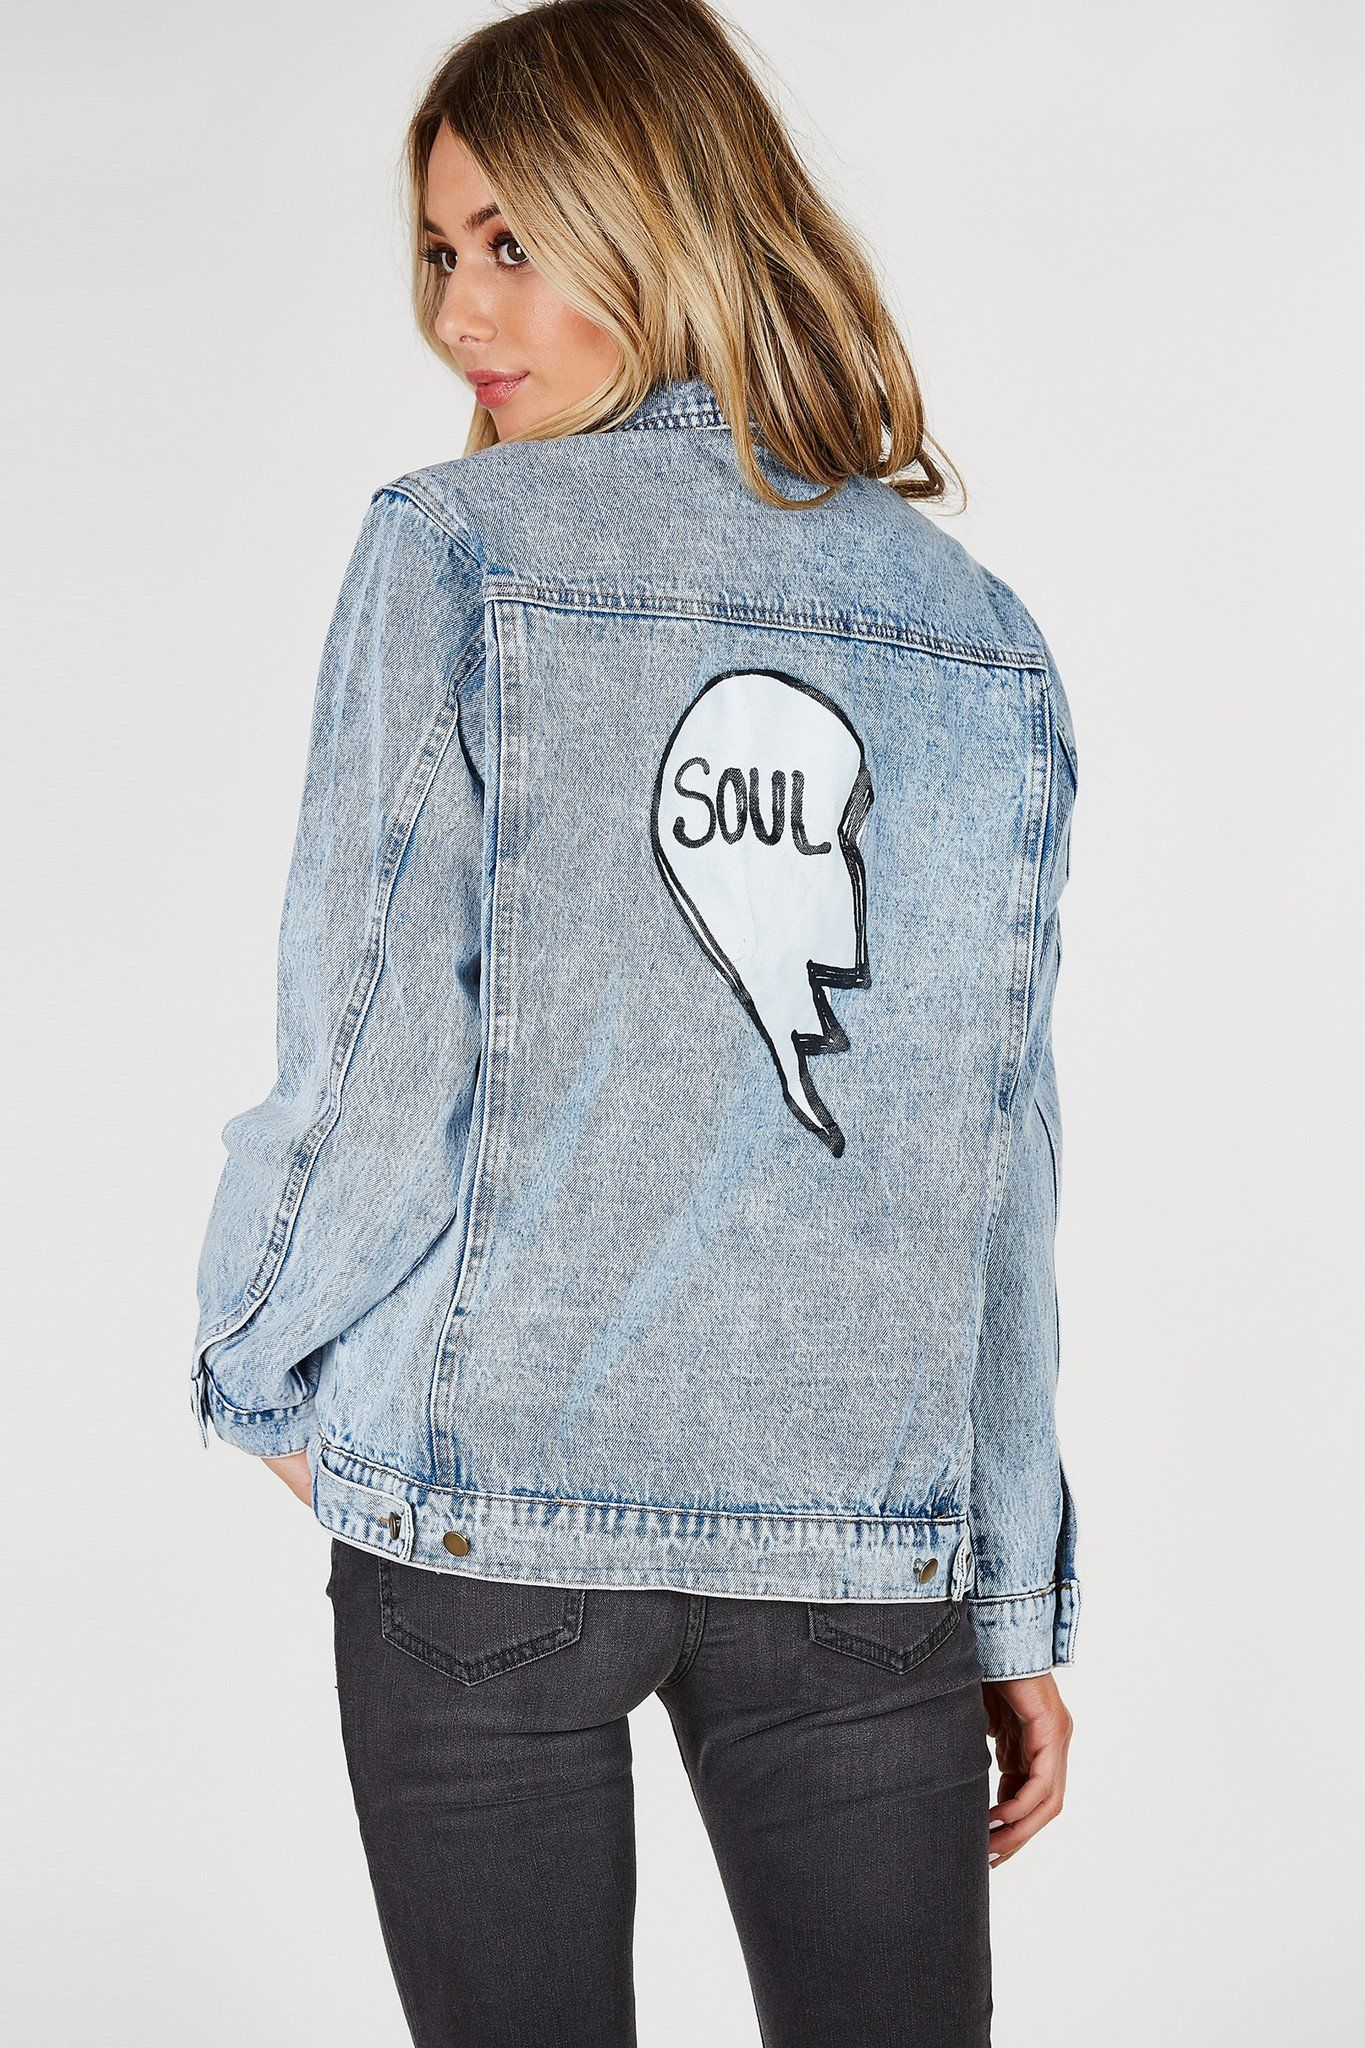 Oversized denim jacket with light acid wash. Patched in front with graphic  in the back